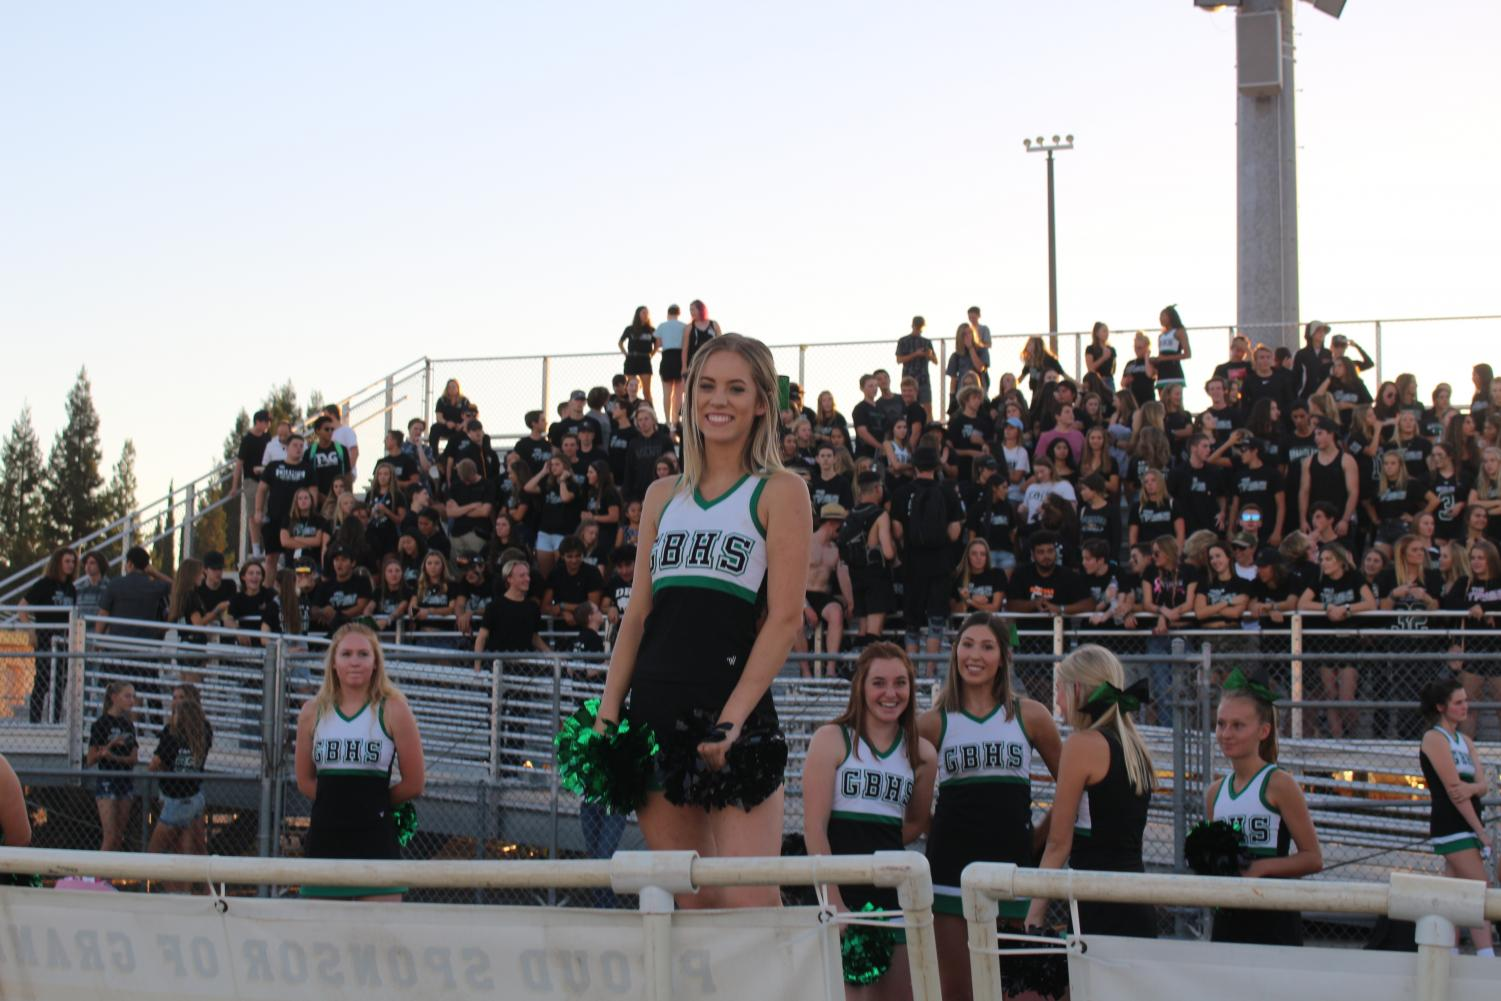 Senior Faye Miller cheering on the sideline of a GBHS varsity football game